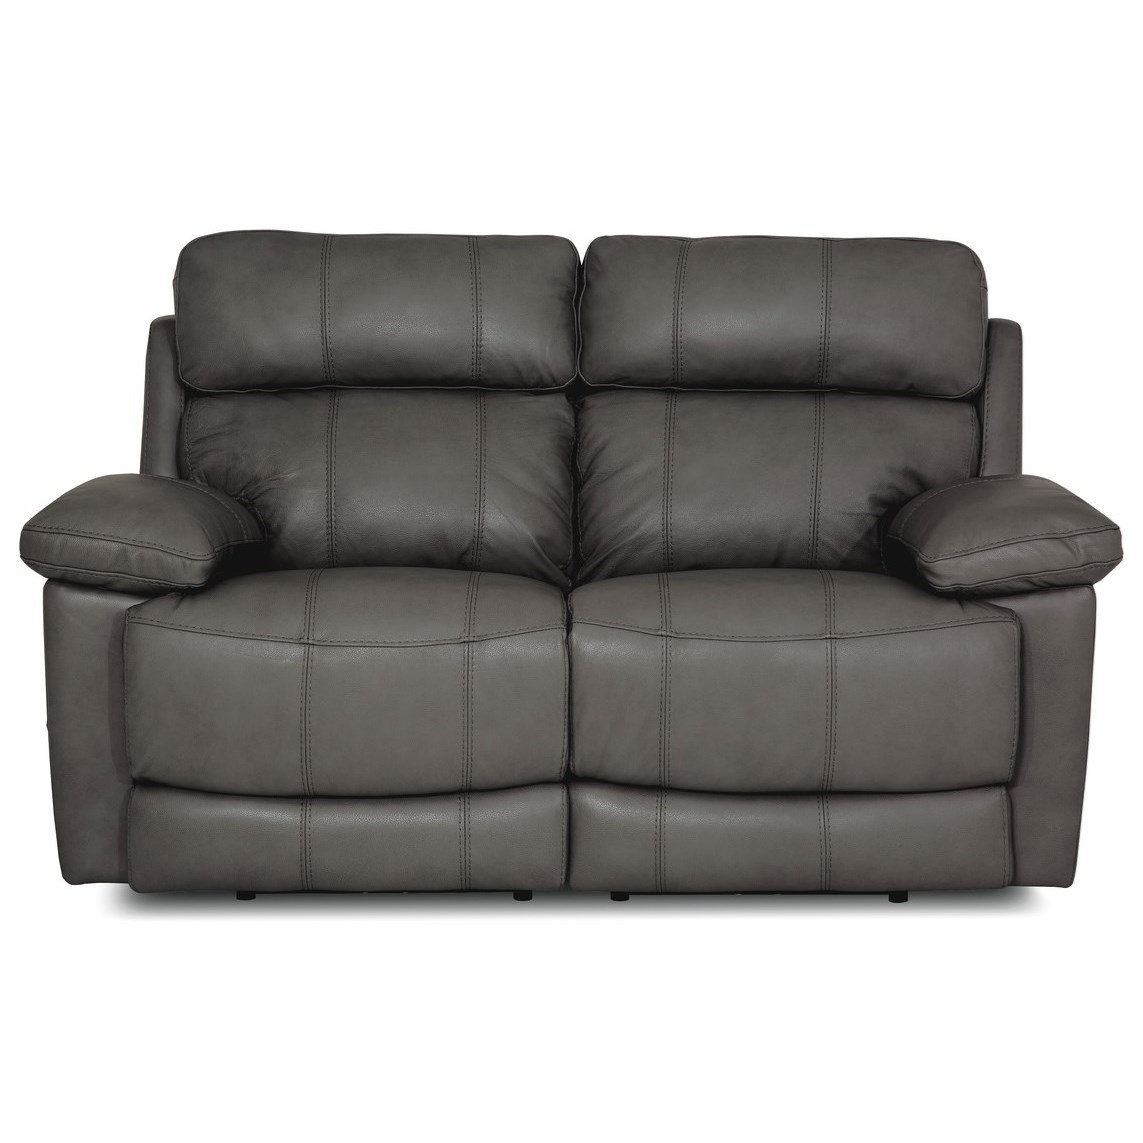 Finley Power Headrest Reclining Loveseat by Palliser at Upper Room Home Furnishings